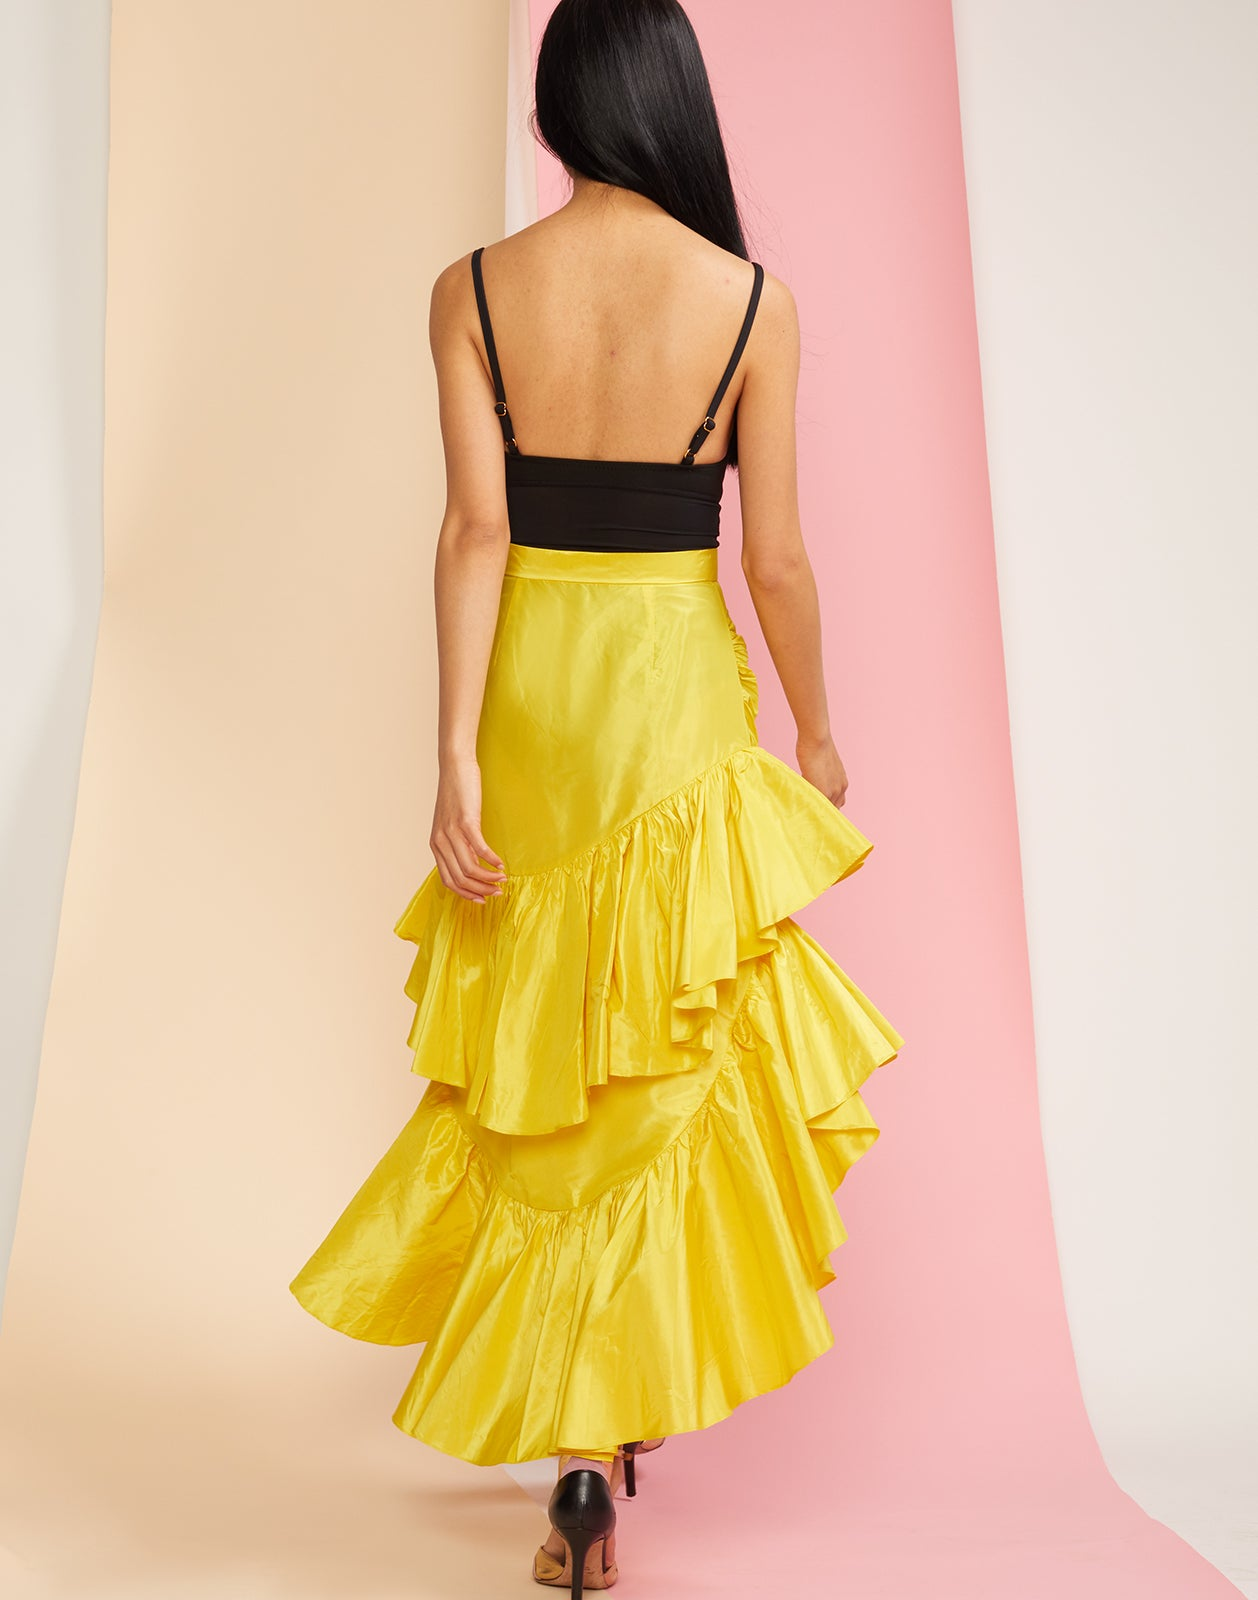 Back view of the Camila tiered ruffle skirt in yellow silk taffeta.